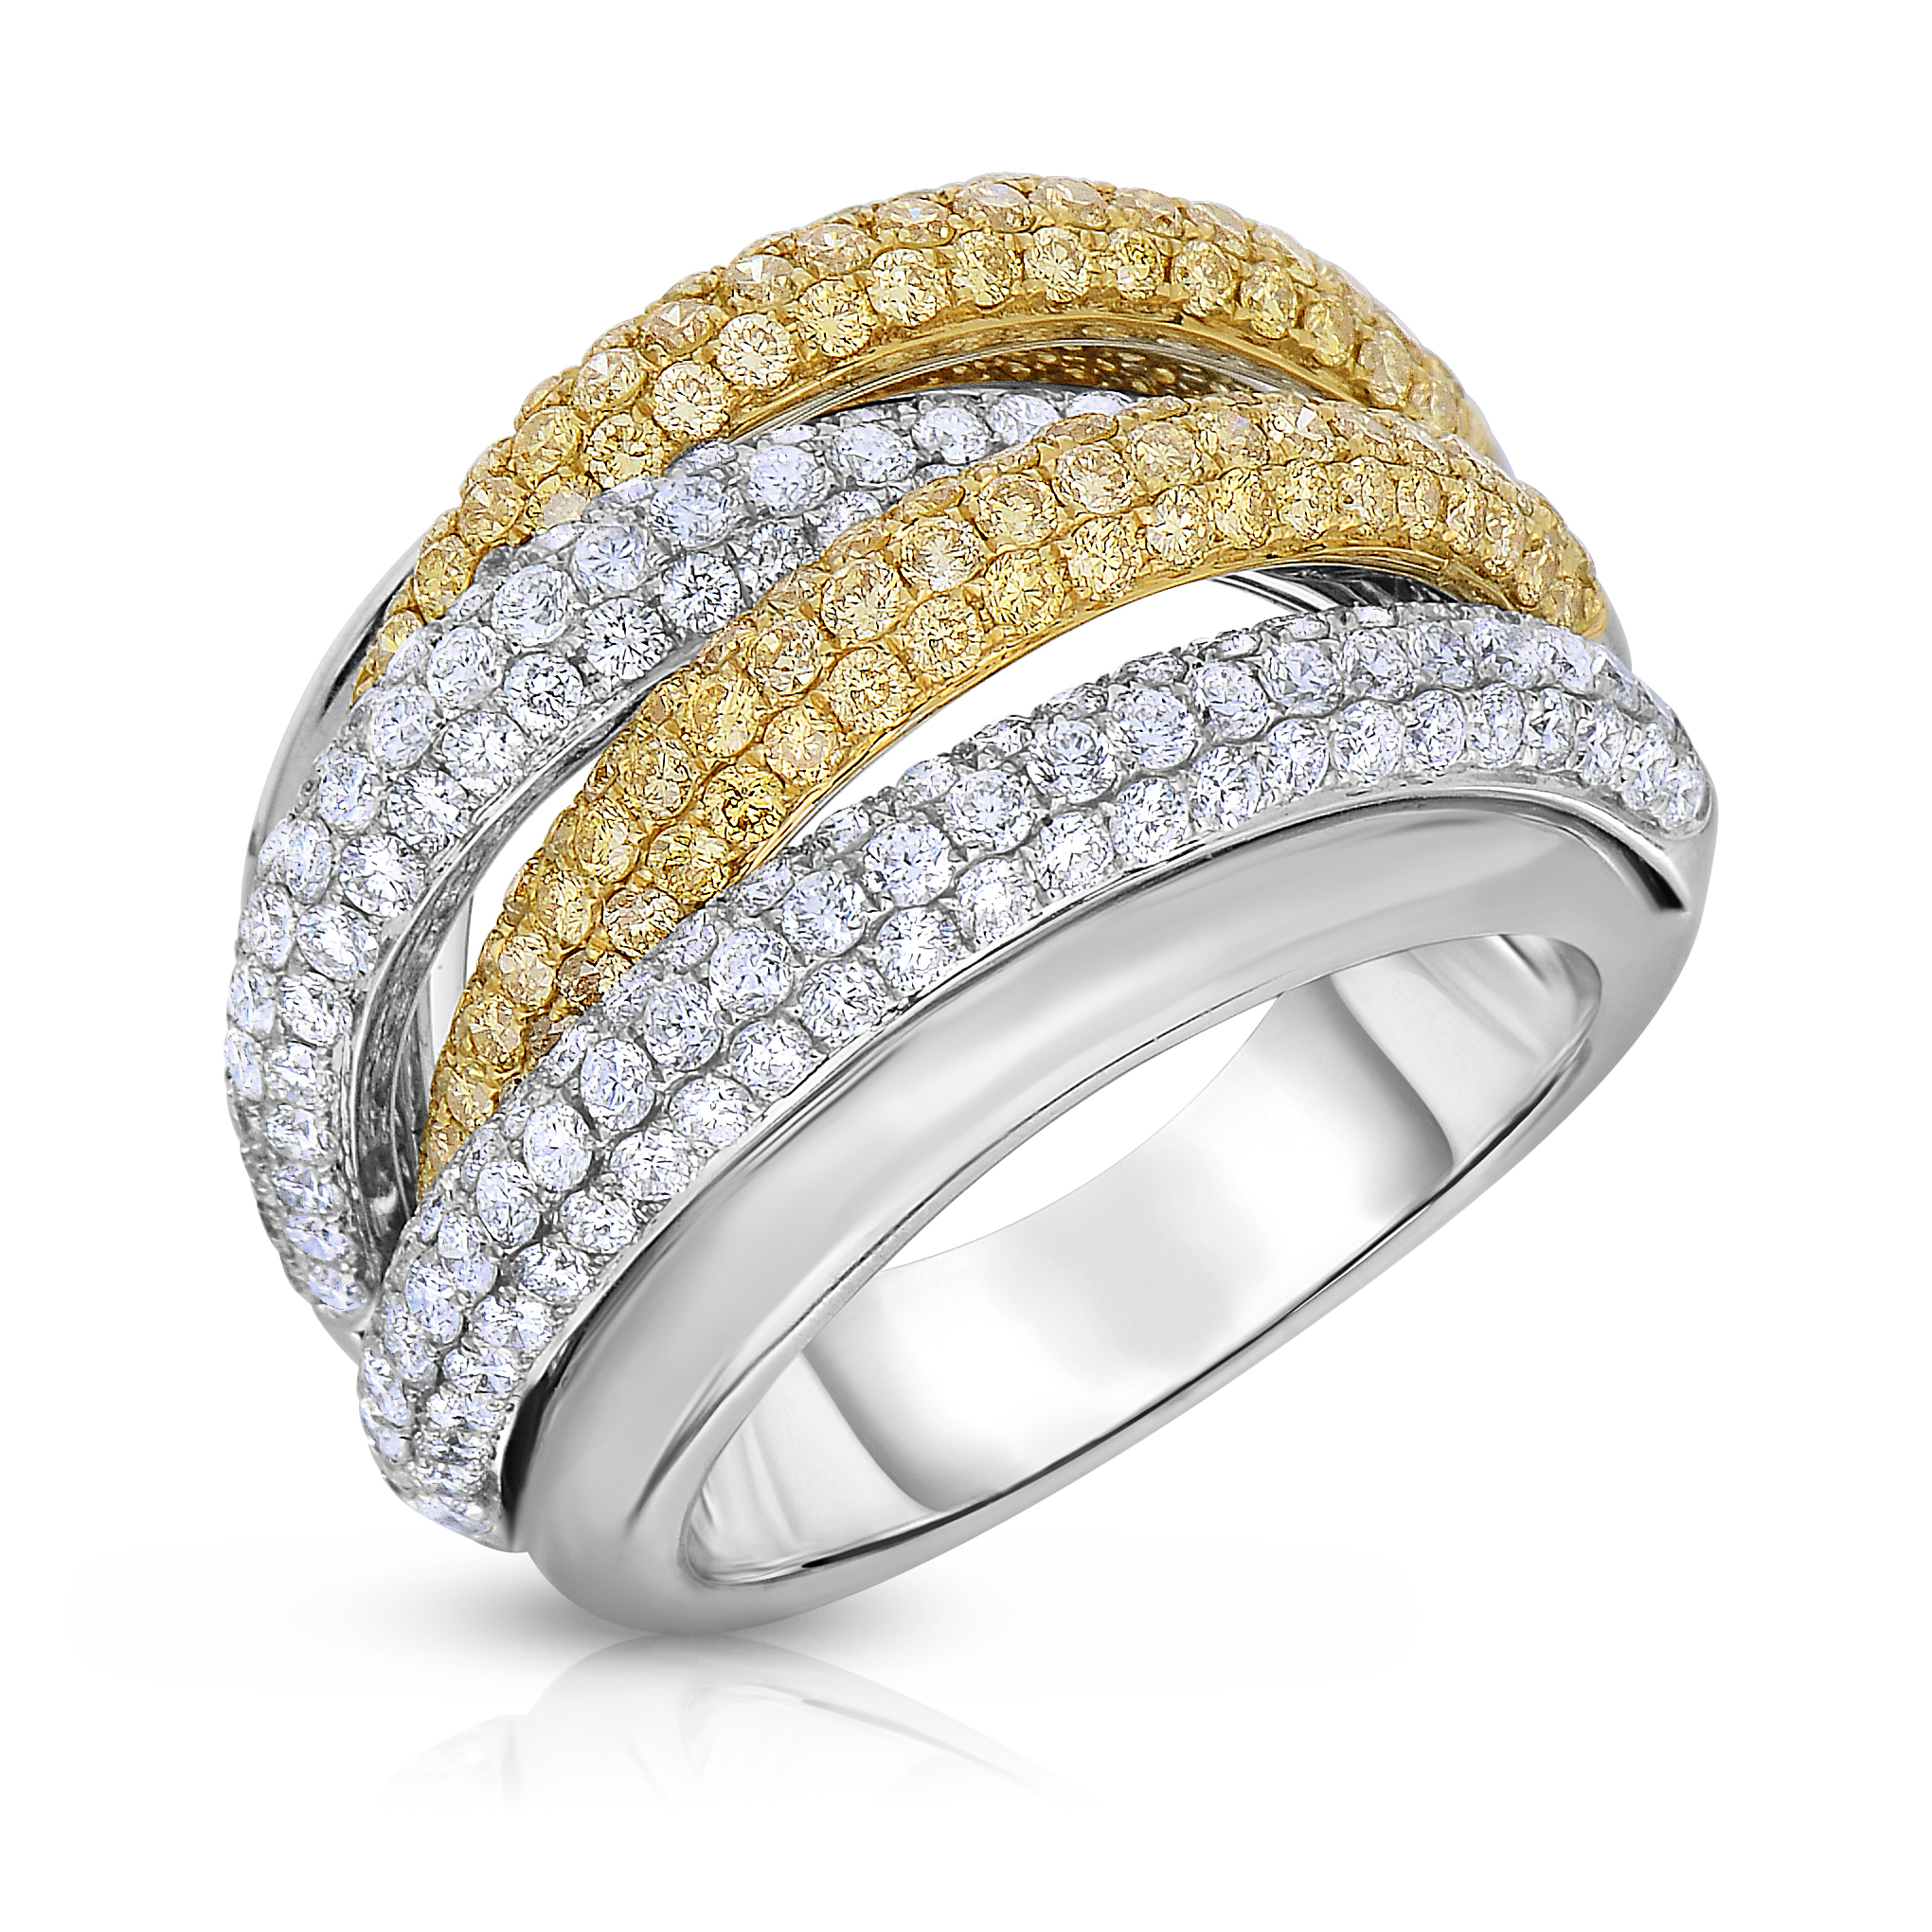 Yellow and white diamond cocktail ring